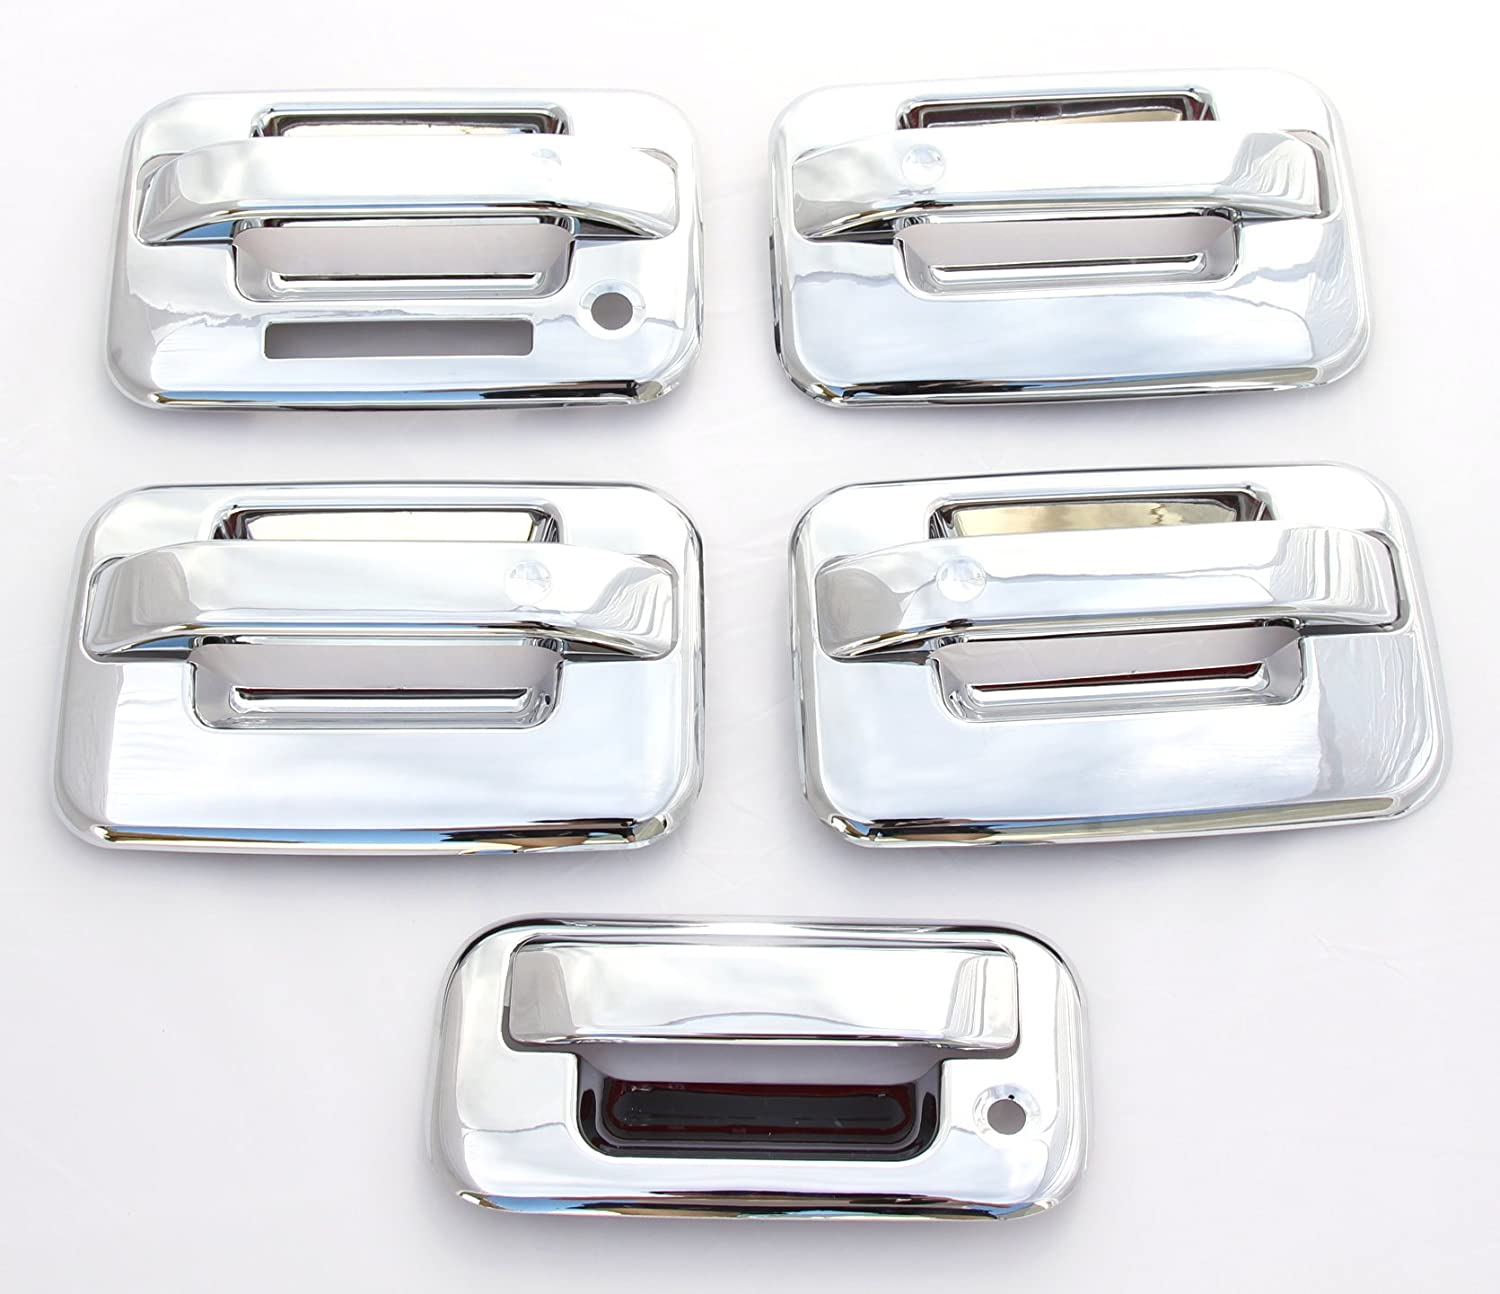 07-12 Dodge Caliber Chrome Door Handle Cover Trim Set 4 Door 4DR Shipped In USA